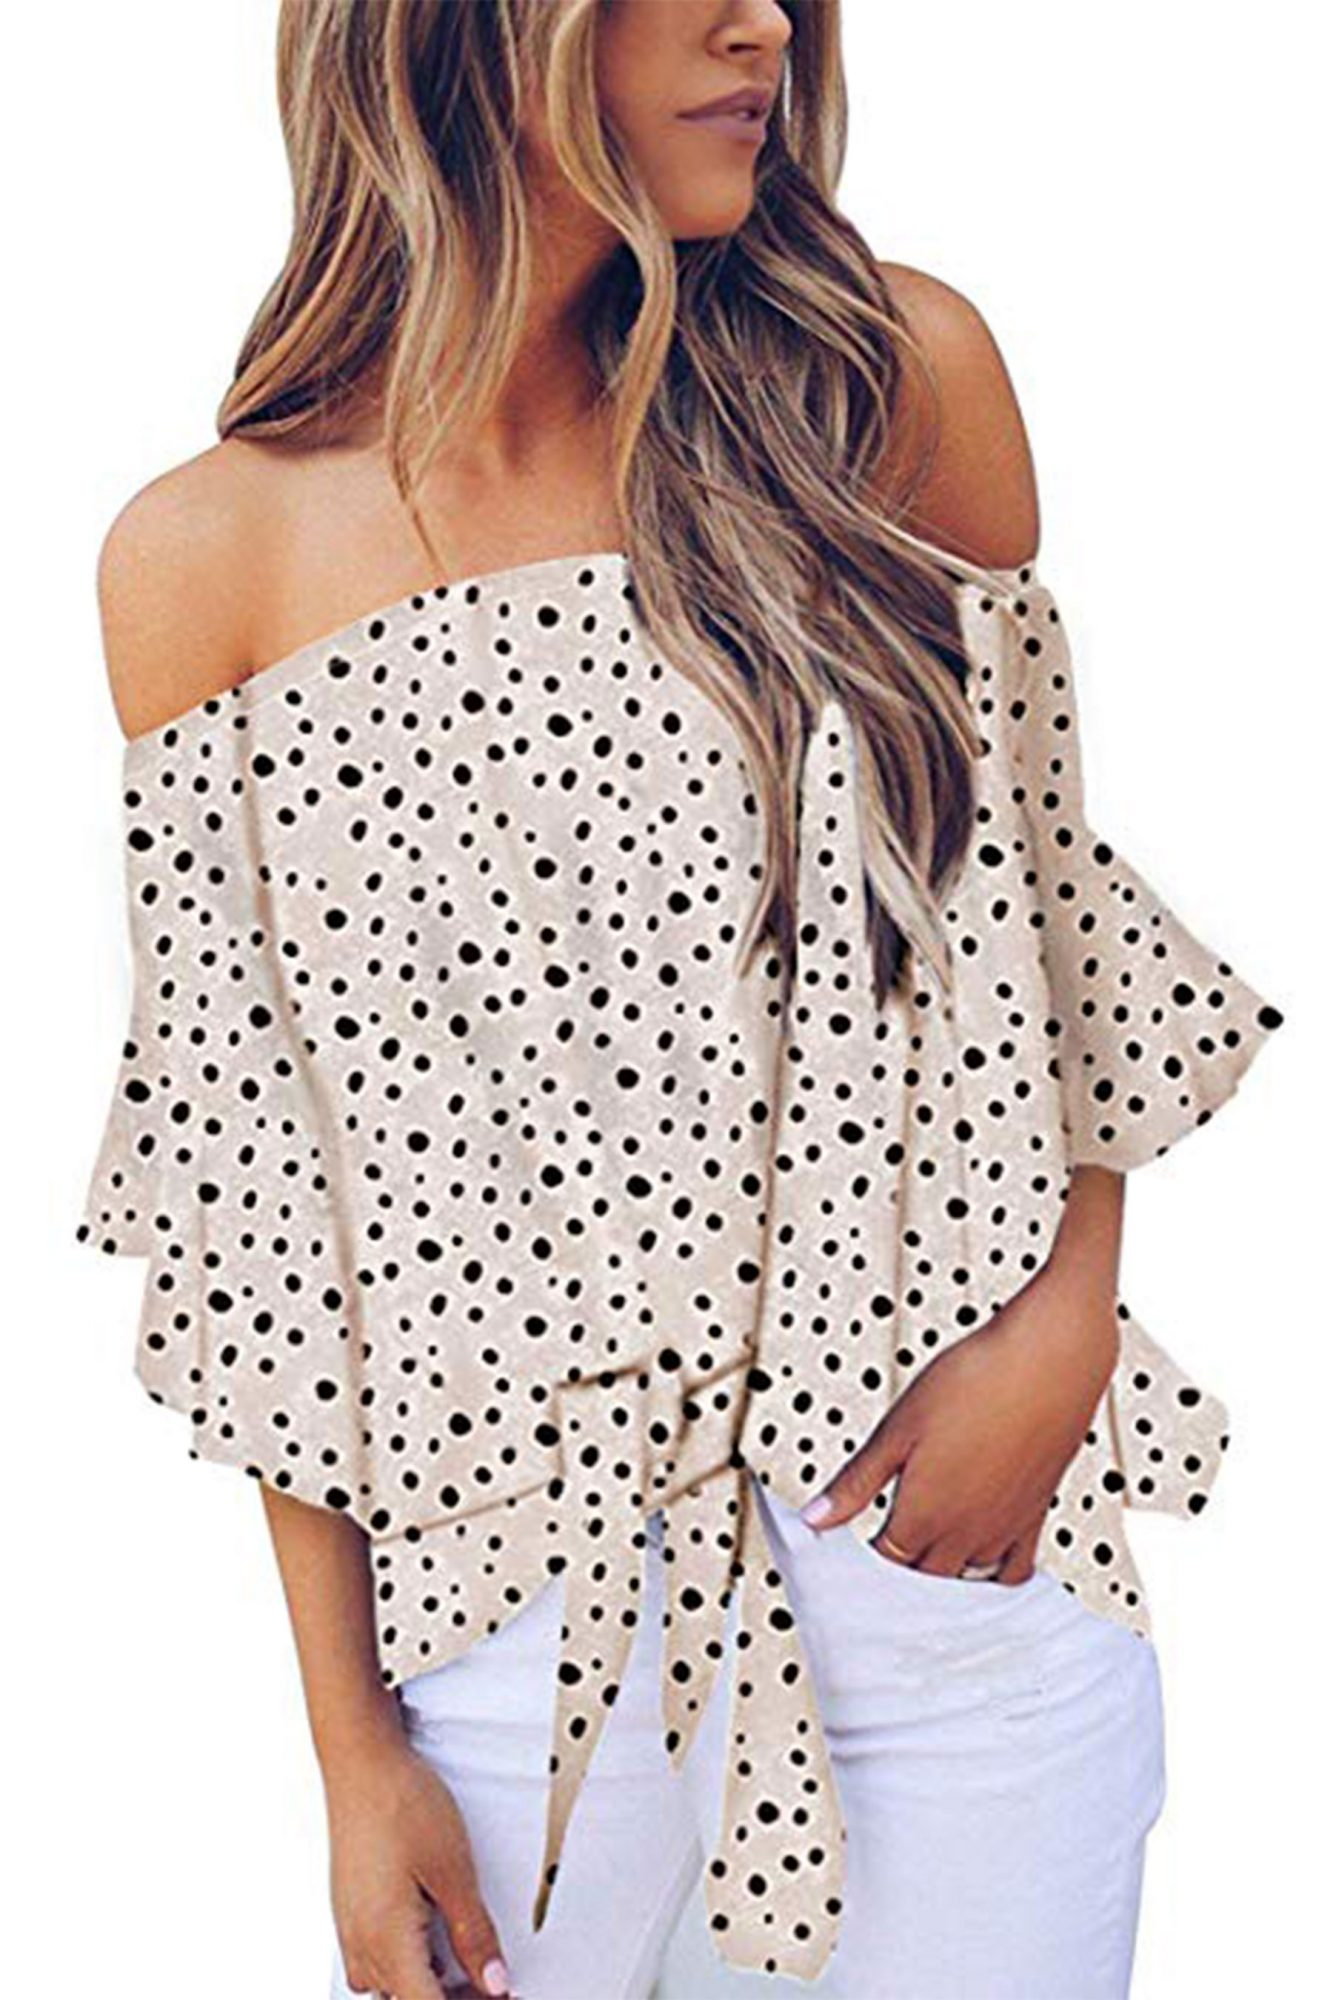 Amazon Fashion Off Shoulder Top Shopping Post